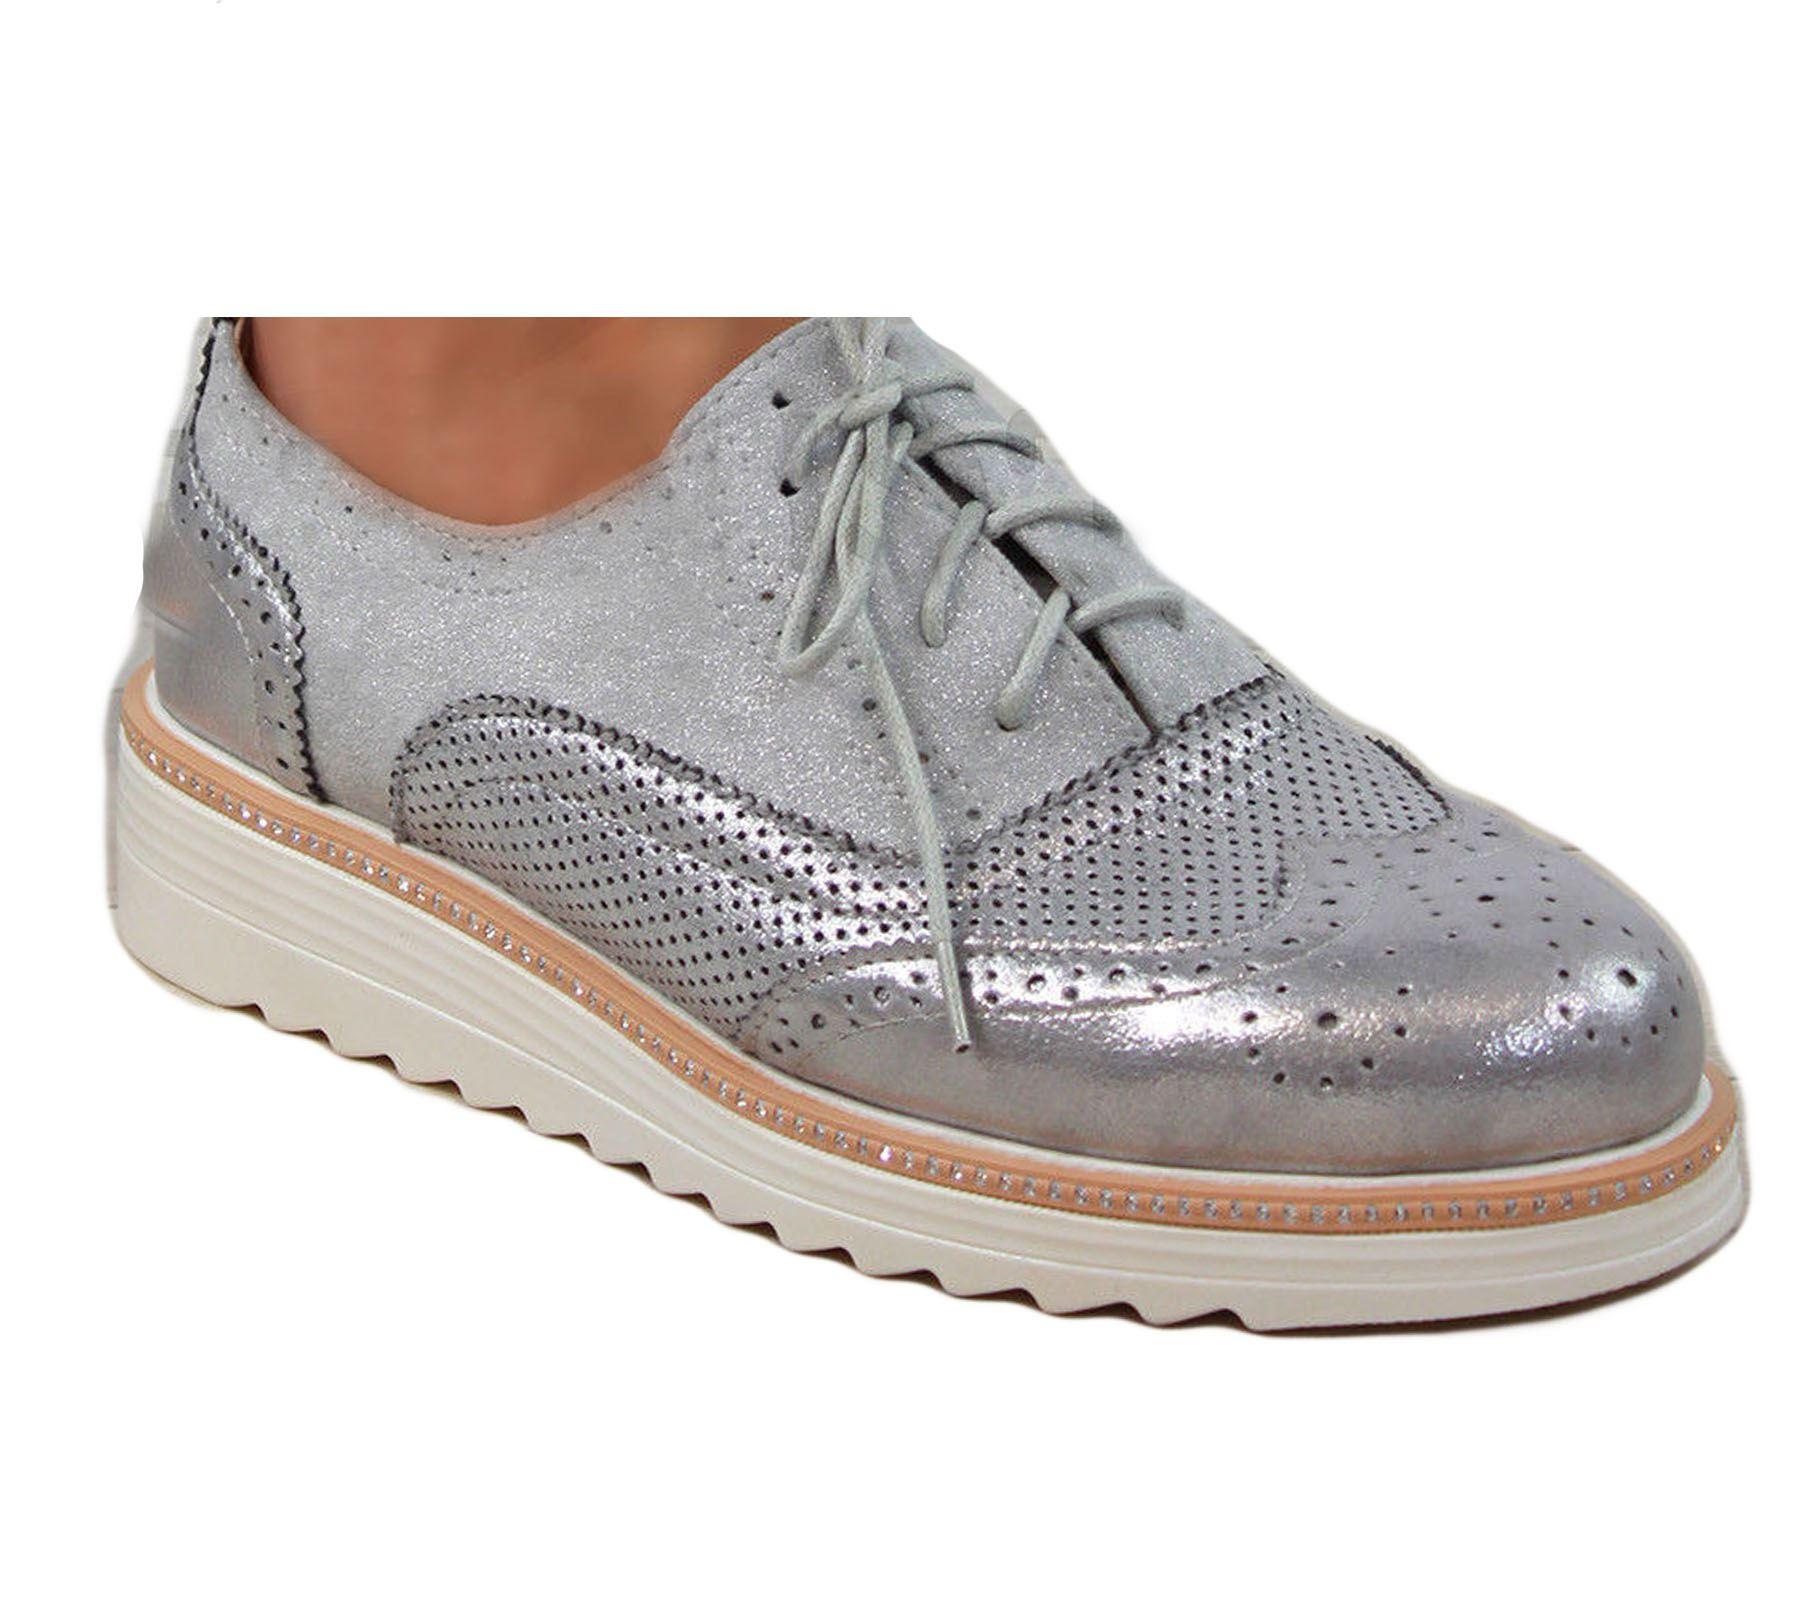 Ladies-Brogue-Lace-Up-Shoes-Womens-Oxford-Smart-Office-Loafers-Shoes miniatura 25